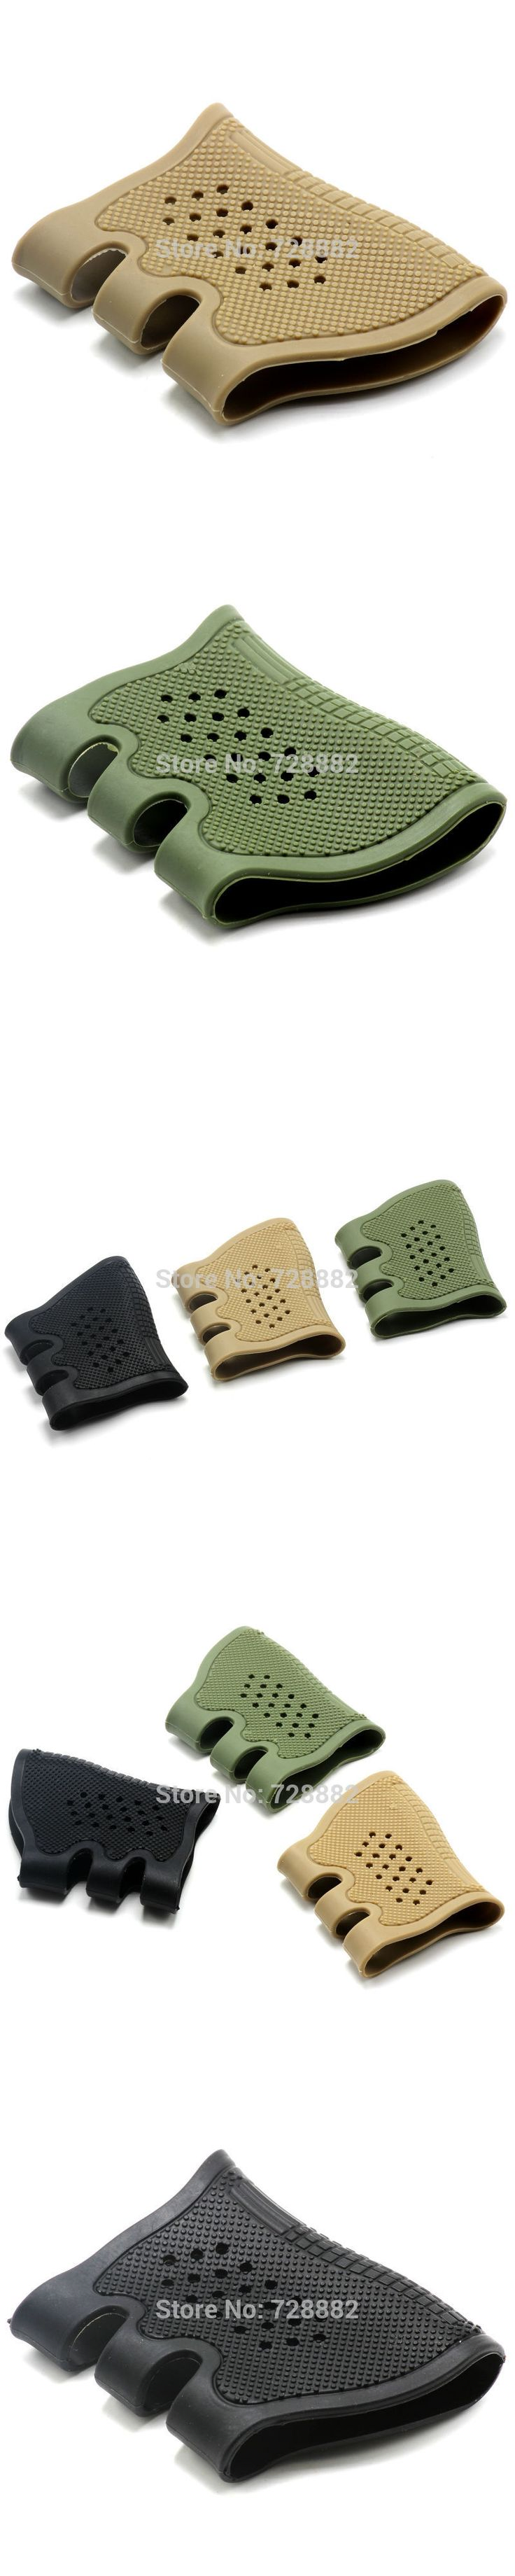 Tactical Universal Pistol Handgun Rubber Protect Cover Grip Glove Holsters Anti Slip Glock Holster Glock 17 19 20 21 22 23